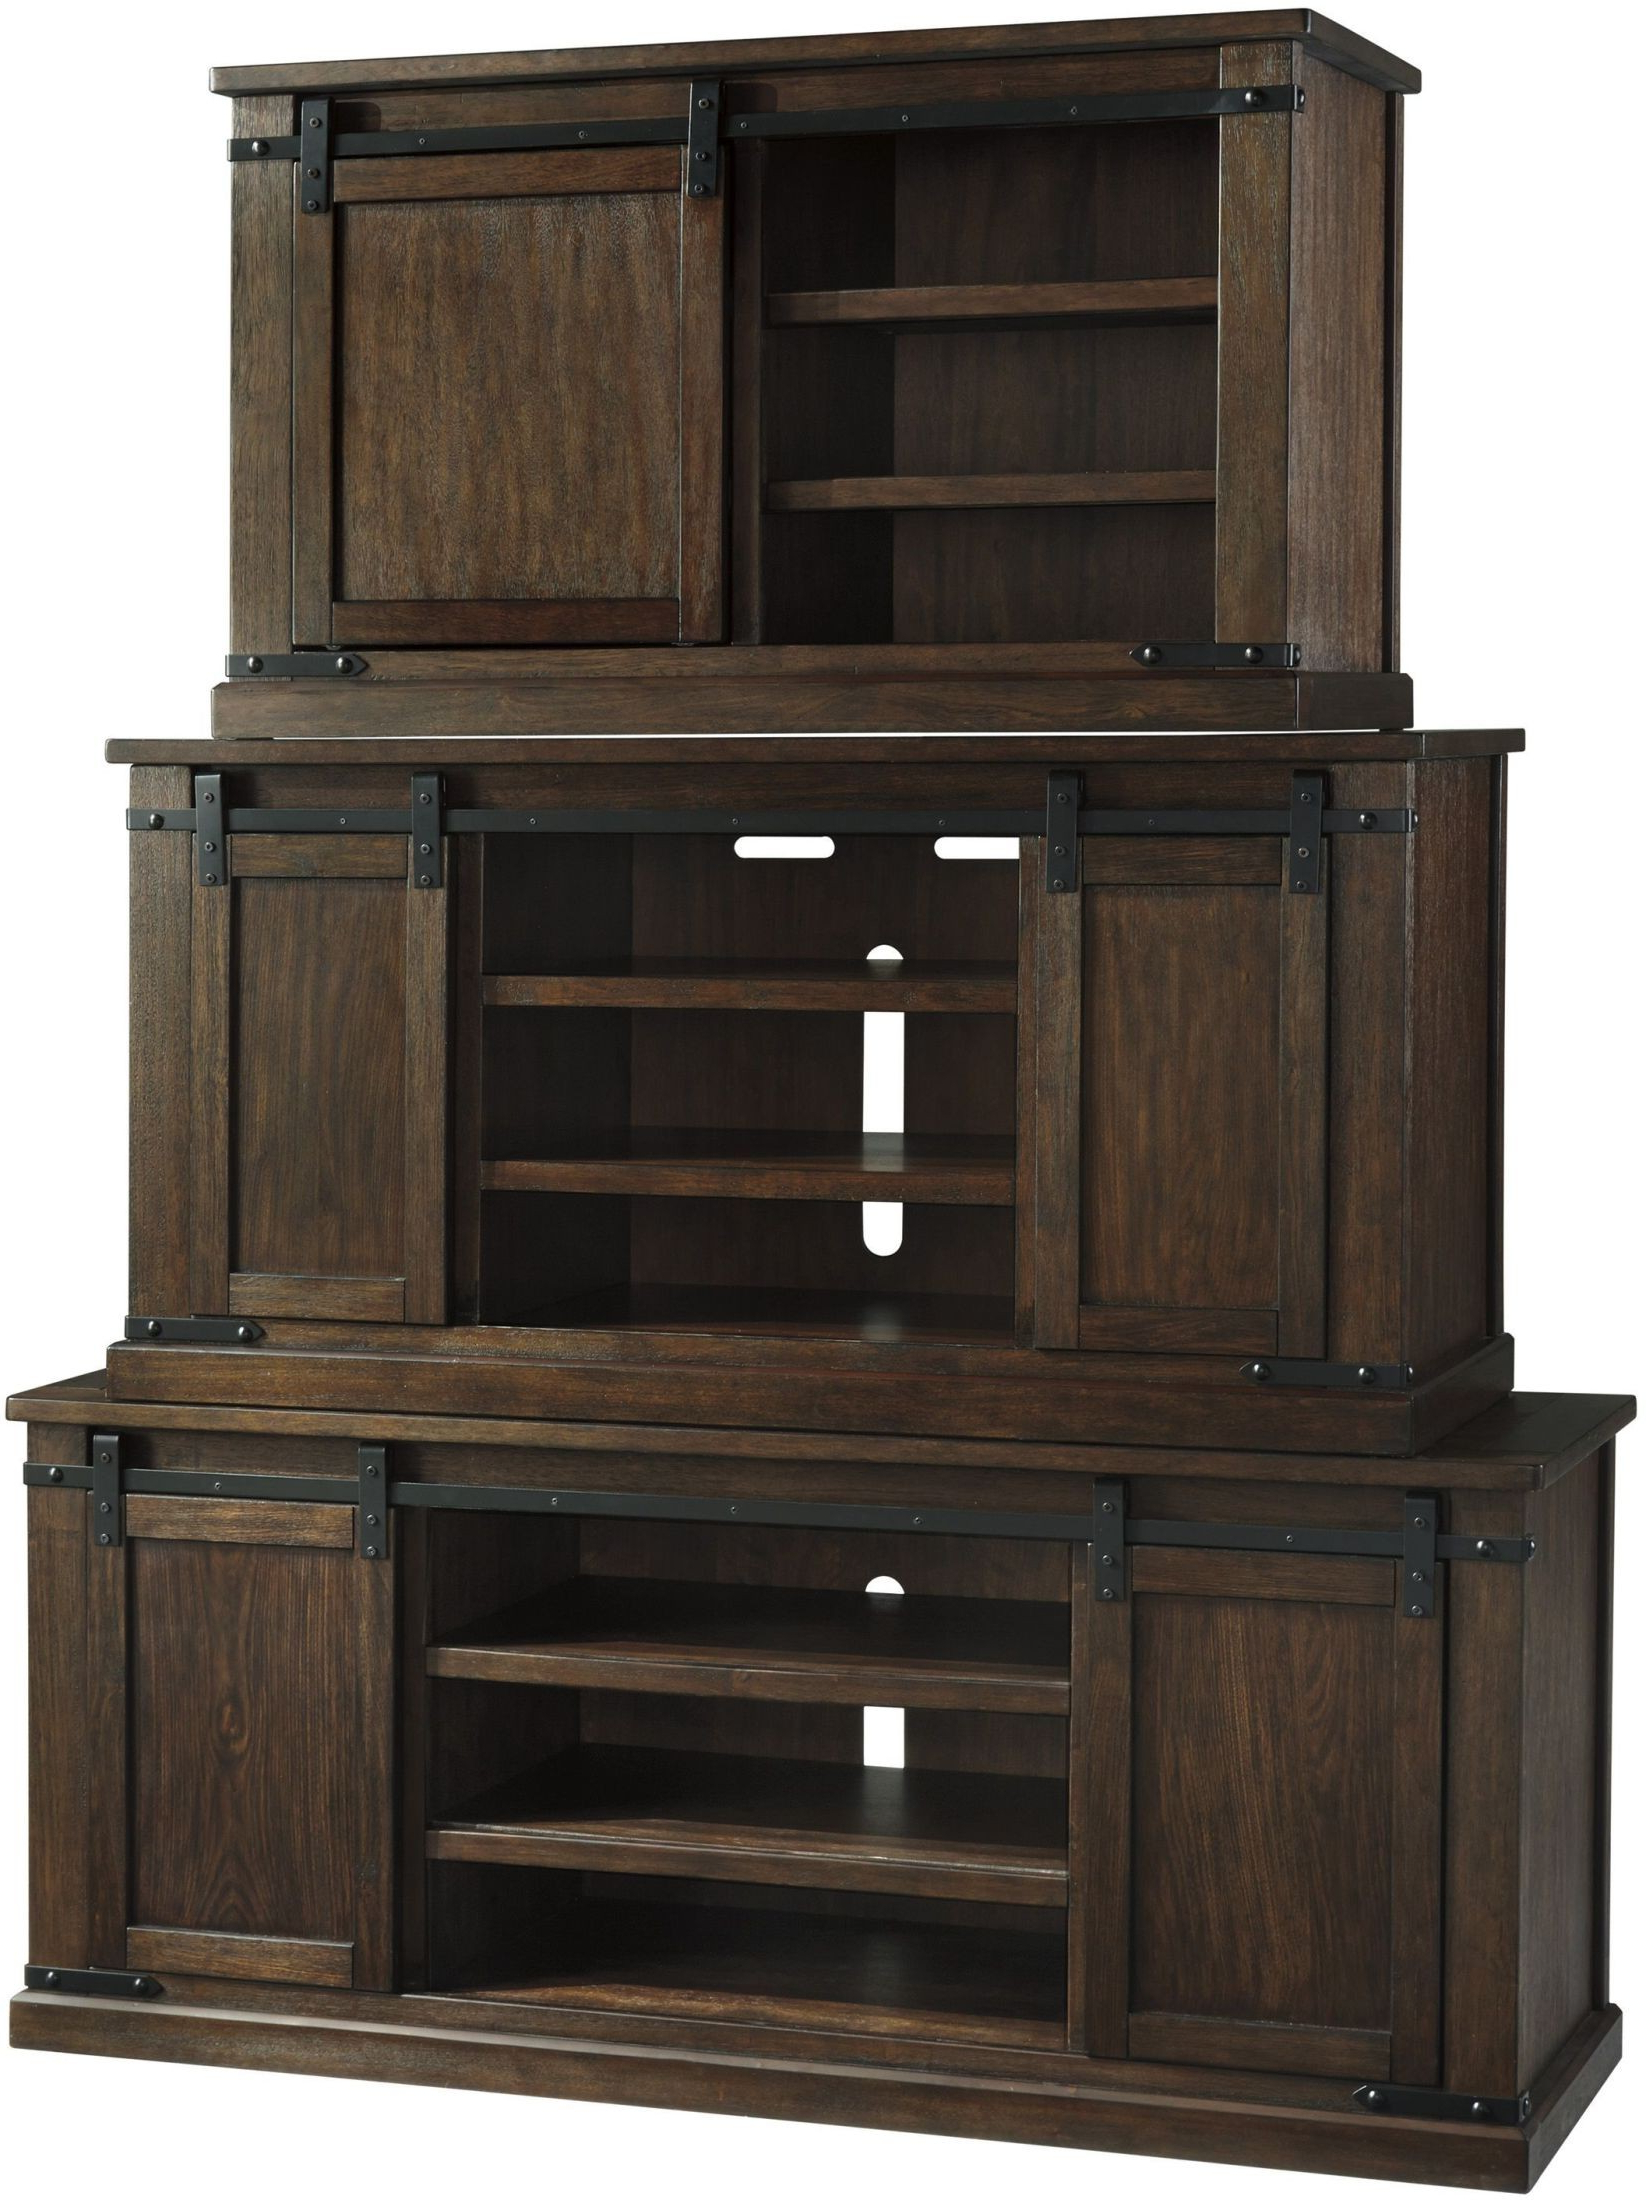 2017 Budmore Rustic Brown Large Tv Stand From Ashley (View 12 of 16)